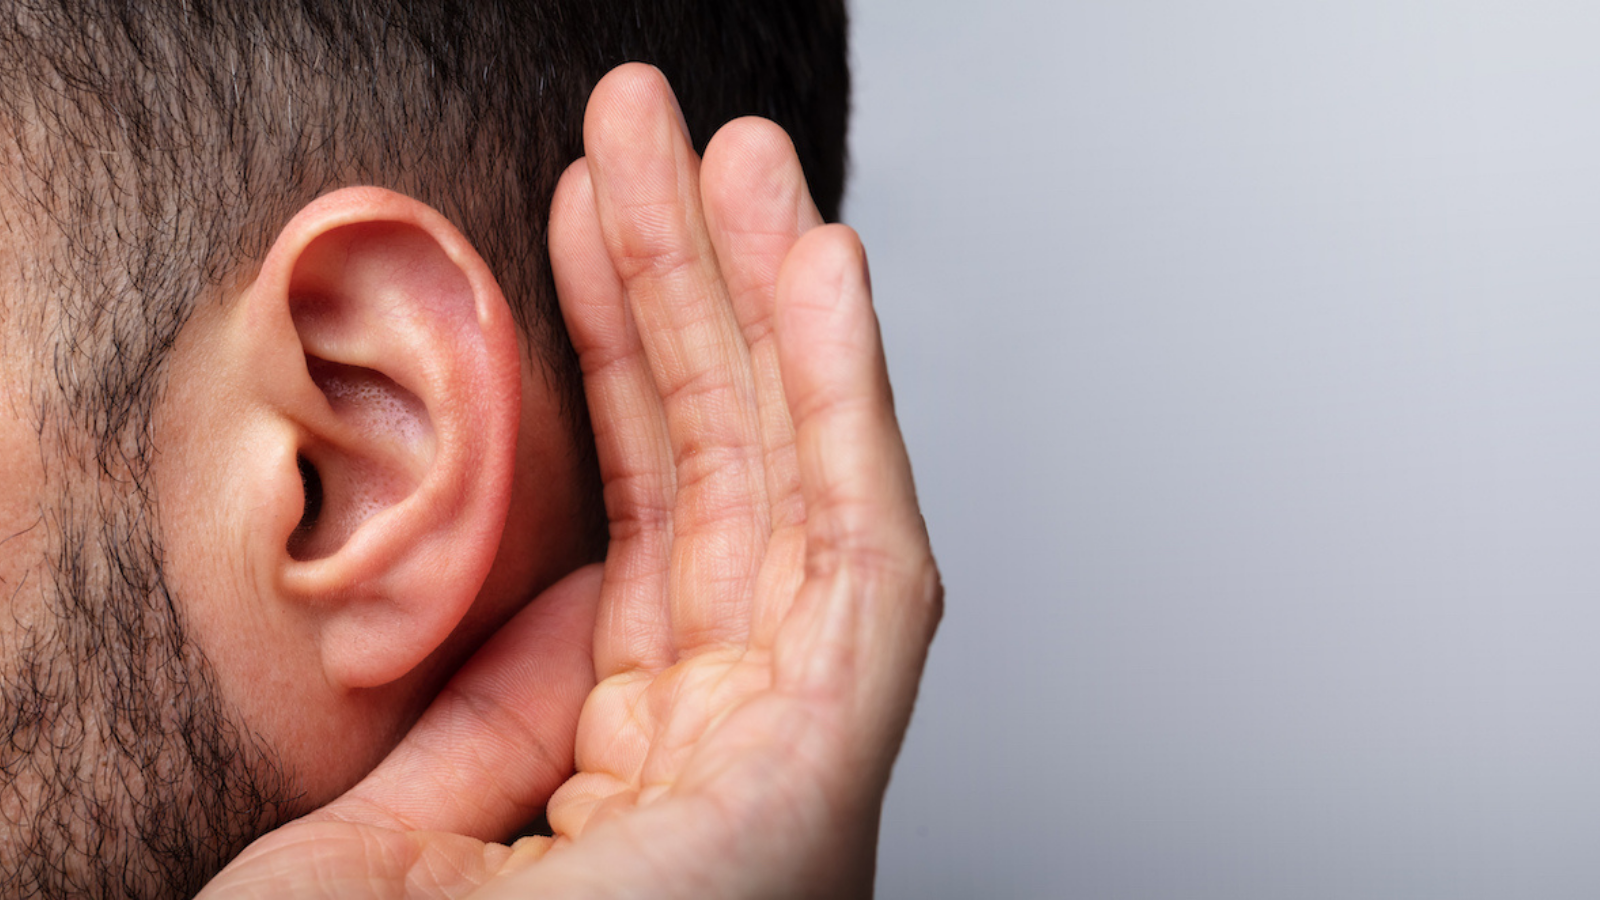 I Can't Hear You: Hearing Loss and COVID-19